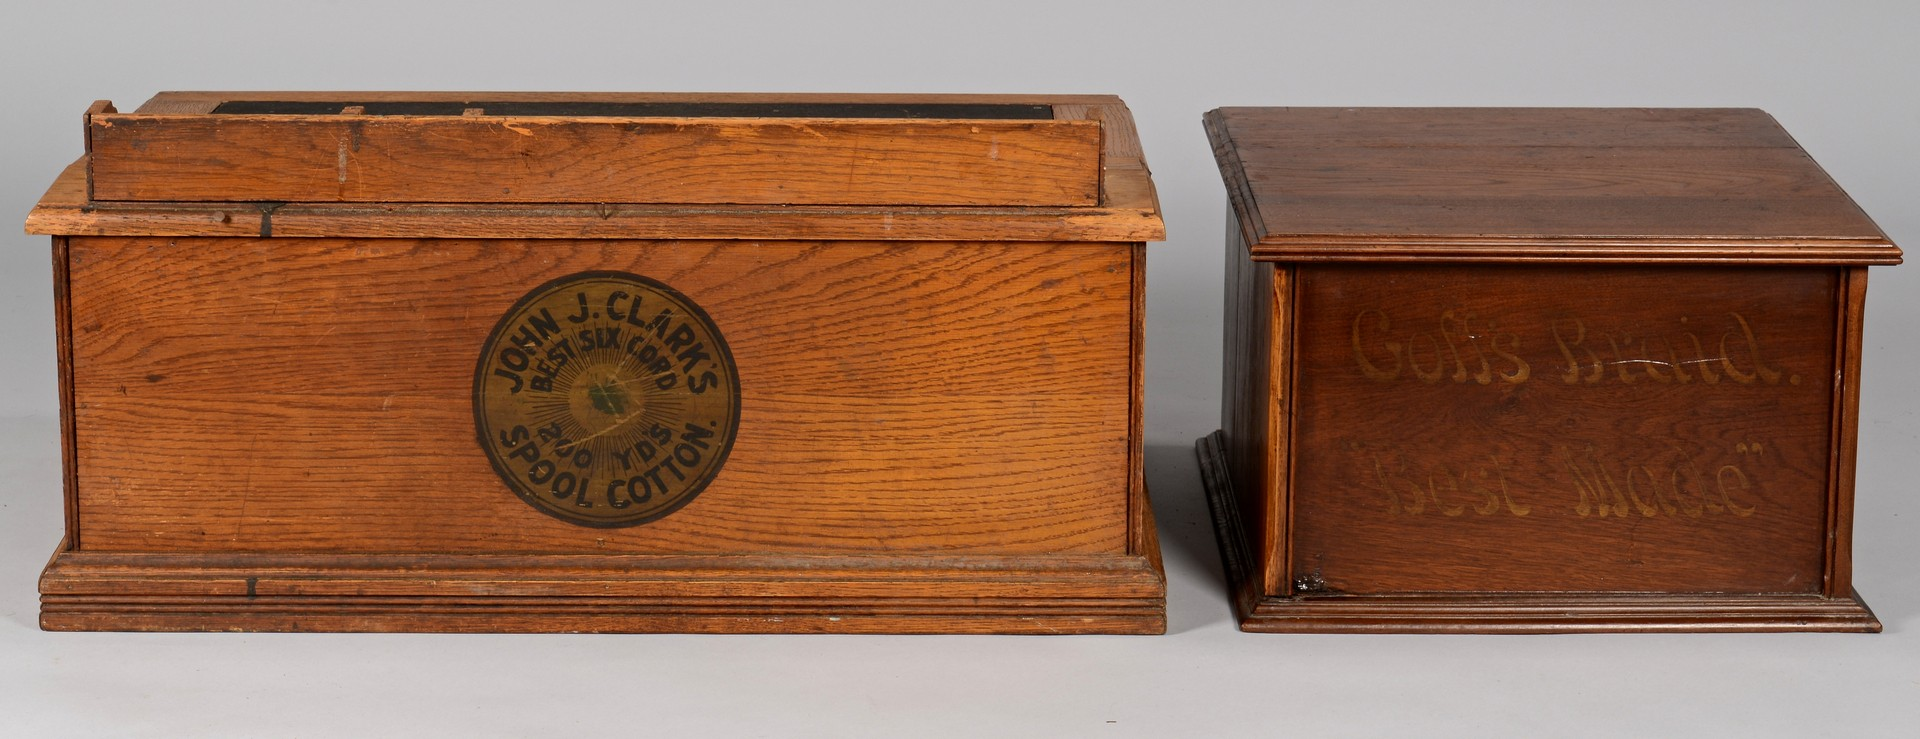 Lot 862: Two (2) Advertising Spool Cabinets, incl. Goff's